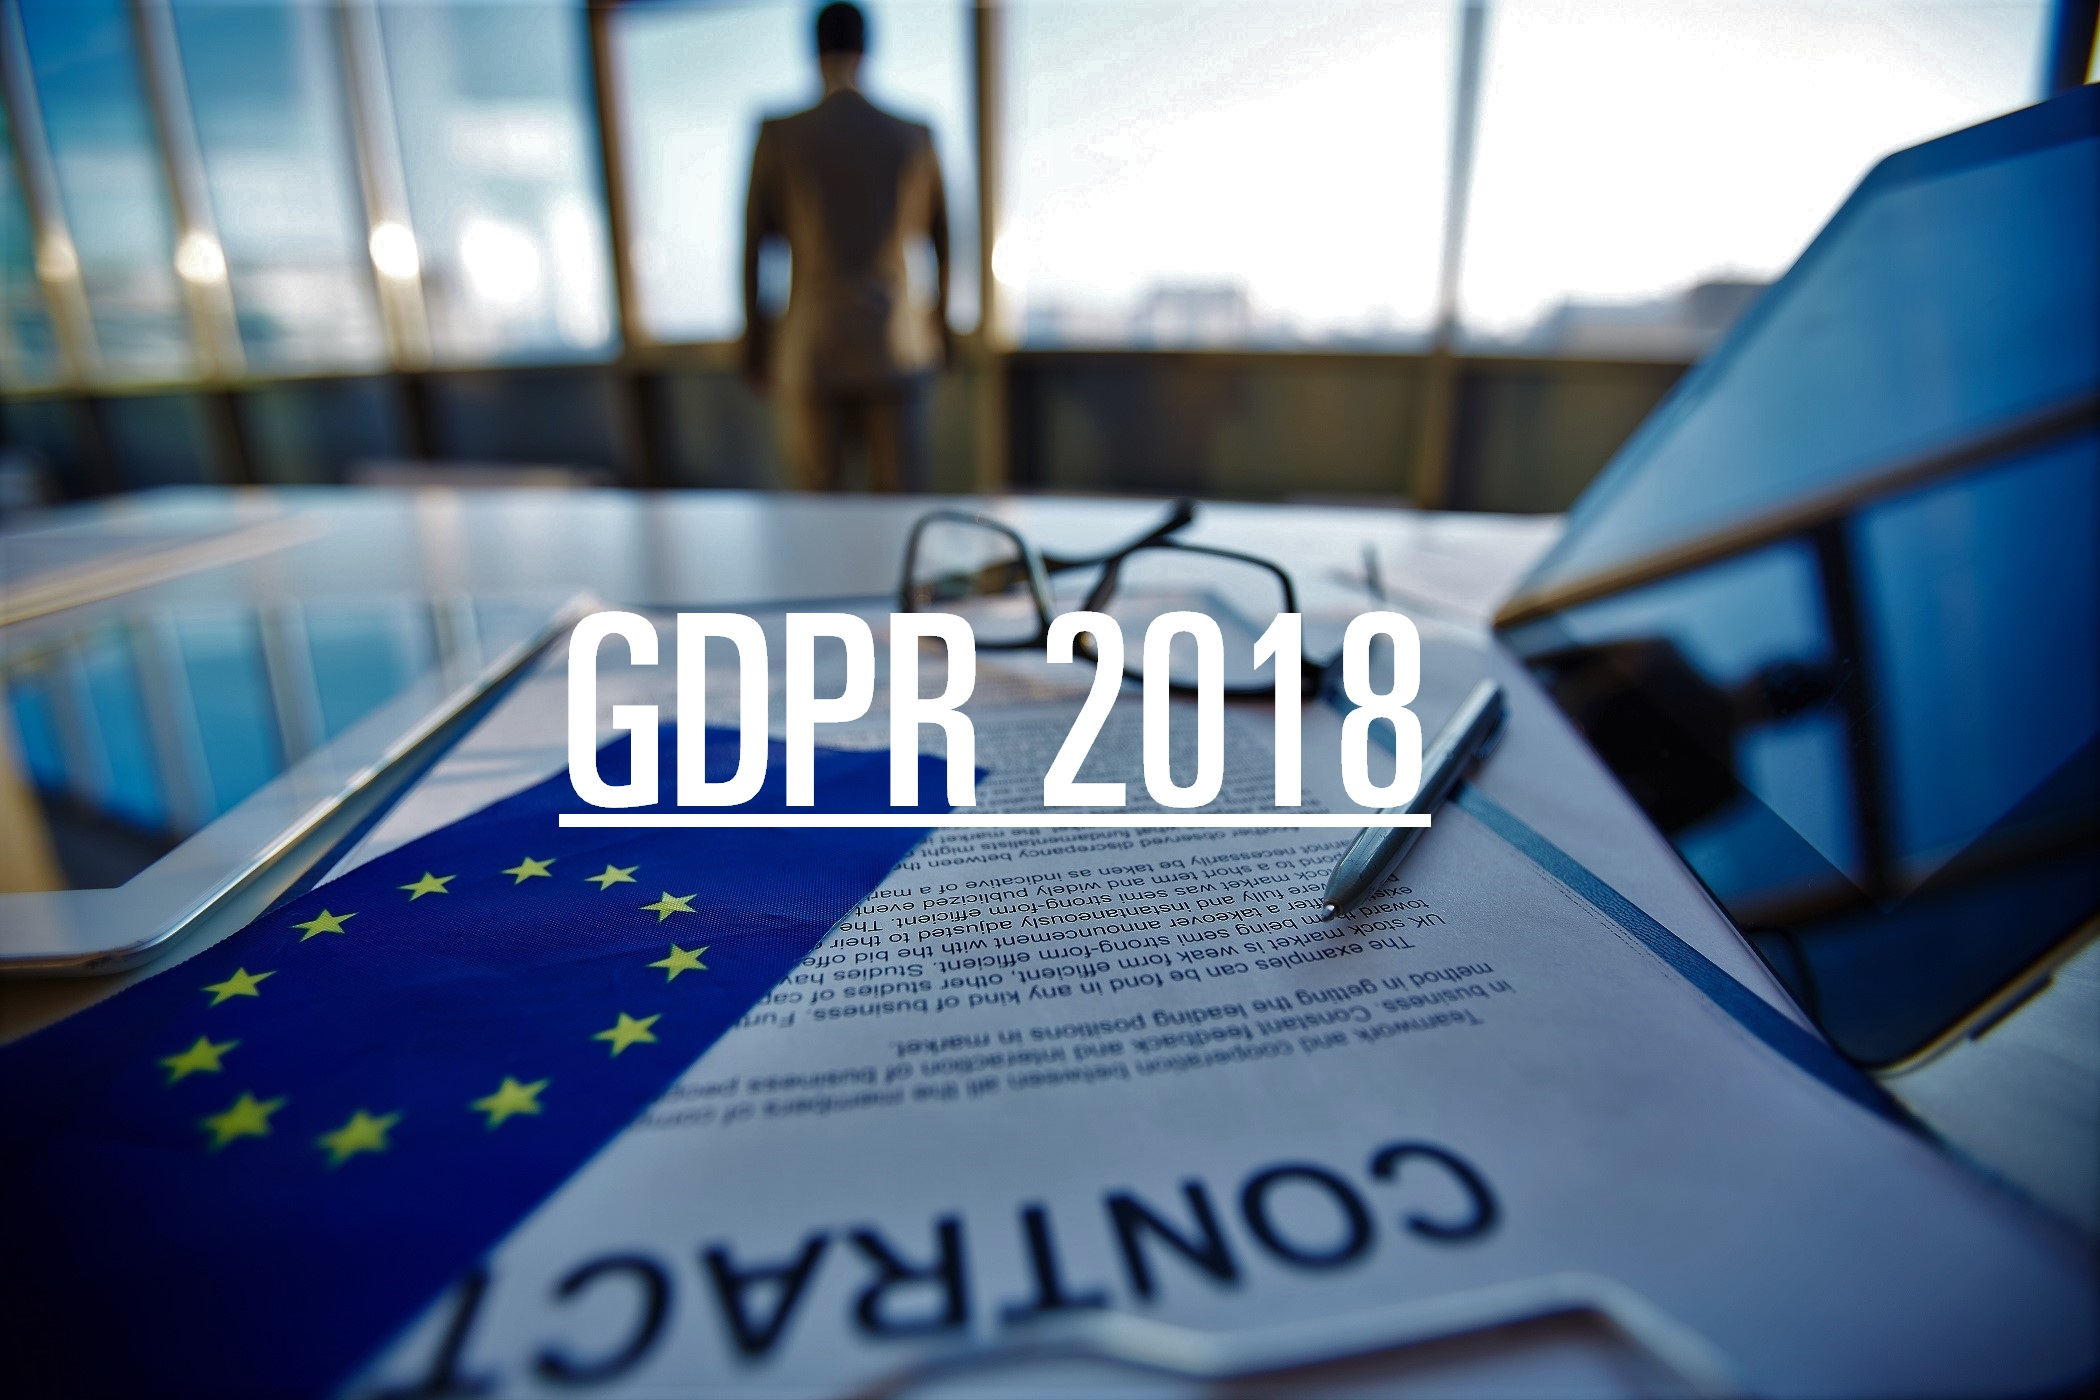 A contract indicating the GDPR implications for marketing that will take effect on May 25th 2018.